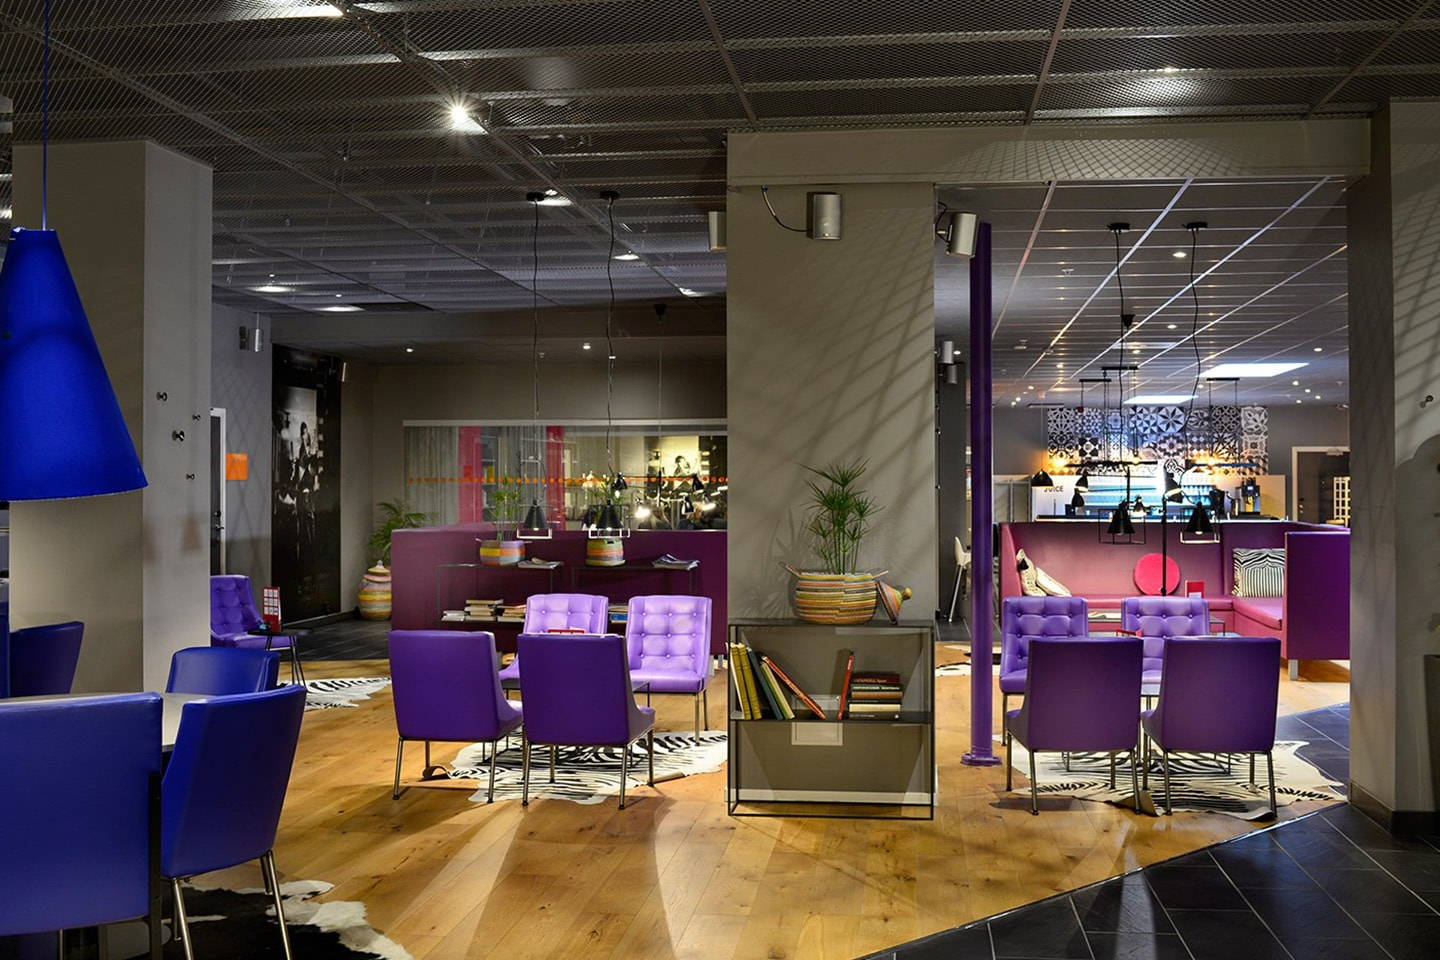 Én natt på moderne Connect Hotel City i Stockholm